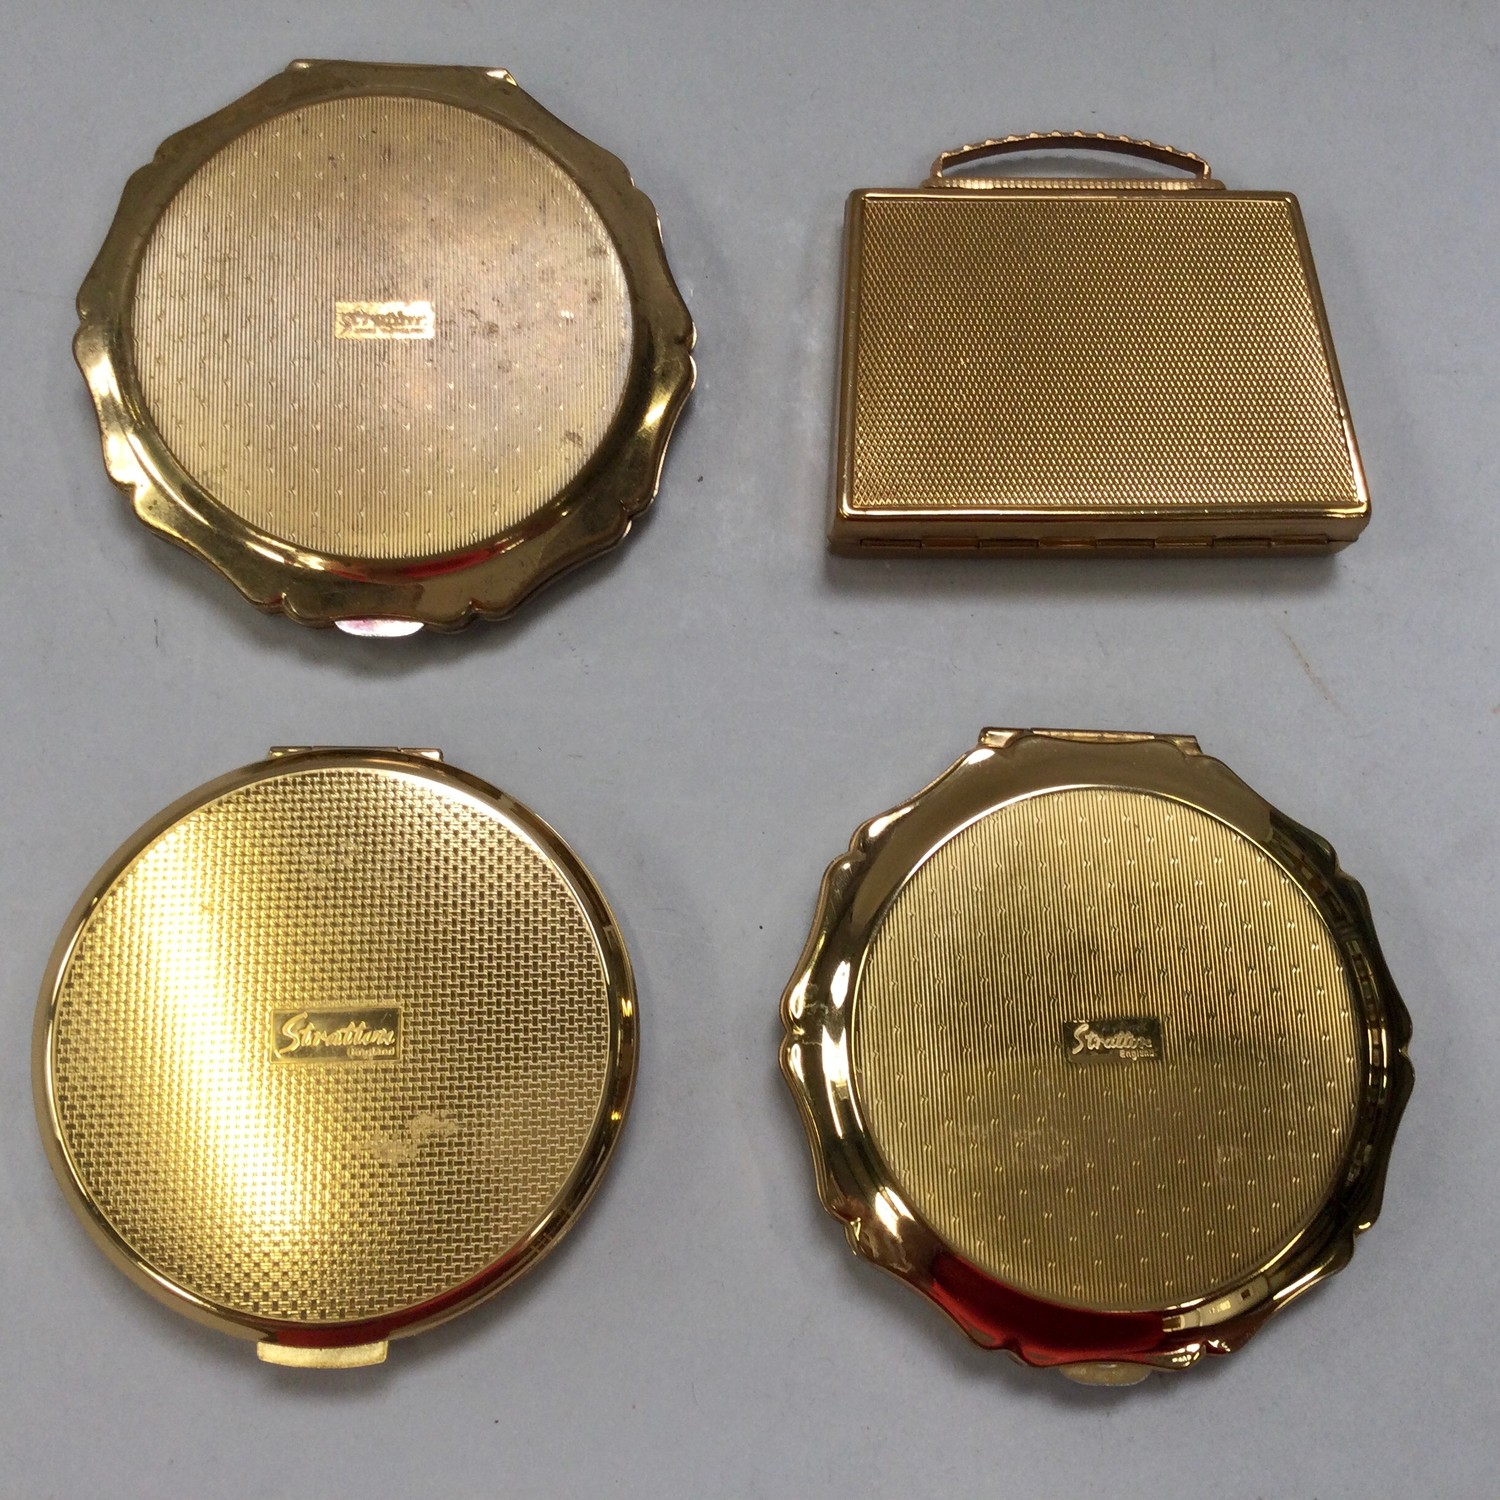 Stratton ladies compacts x4 all with cloth pouches. - Image 2 of 3